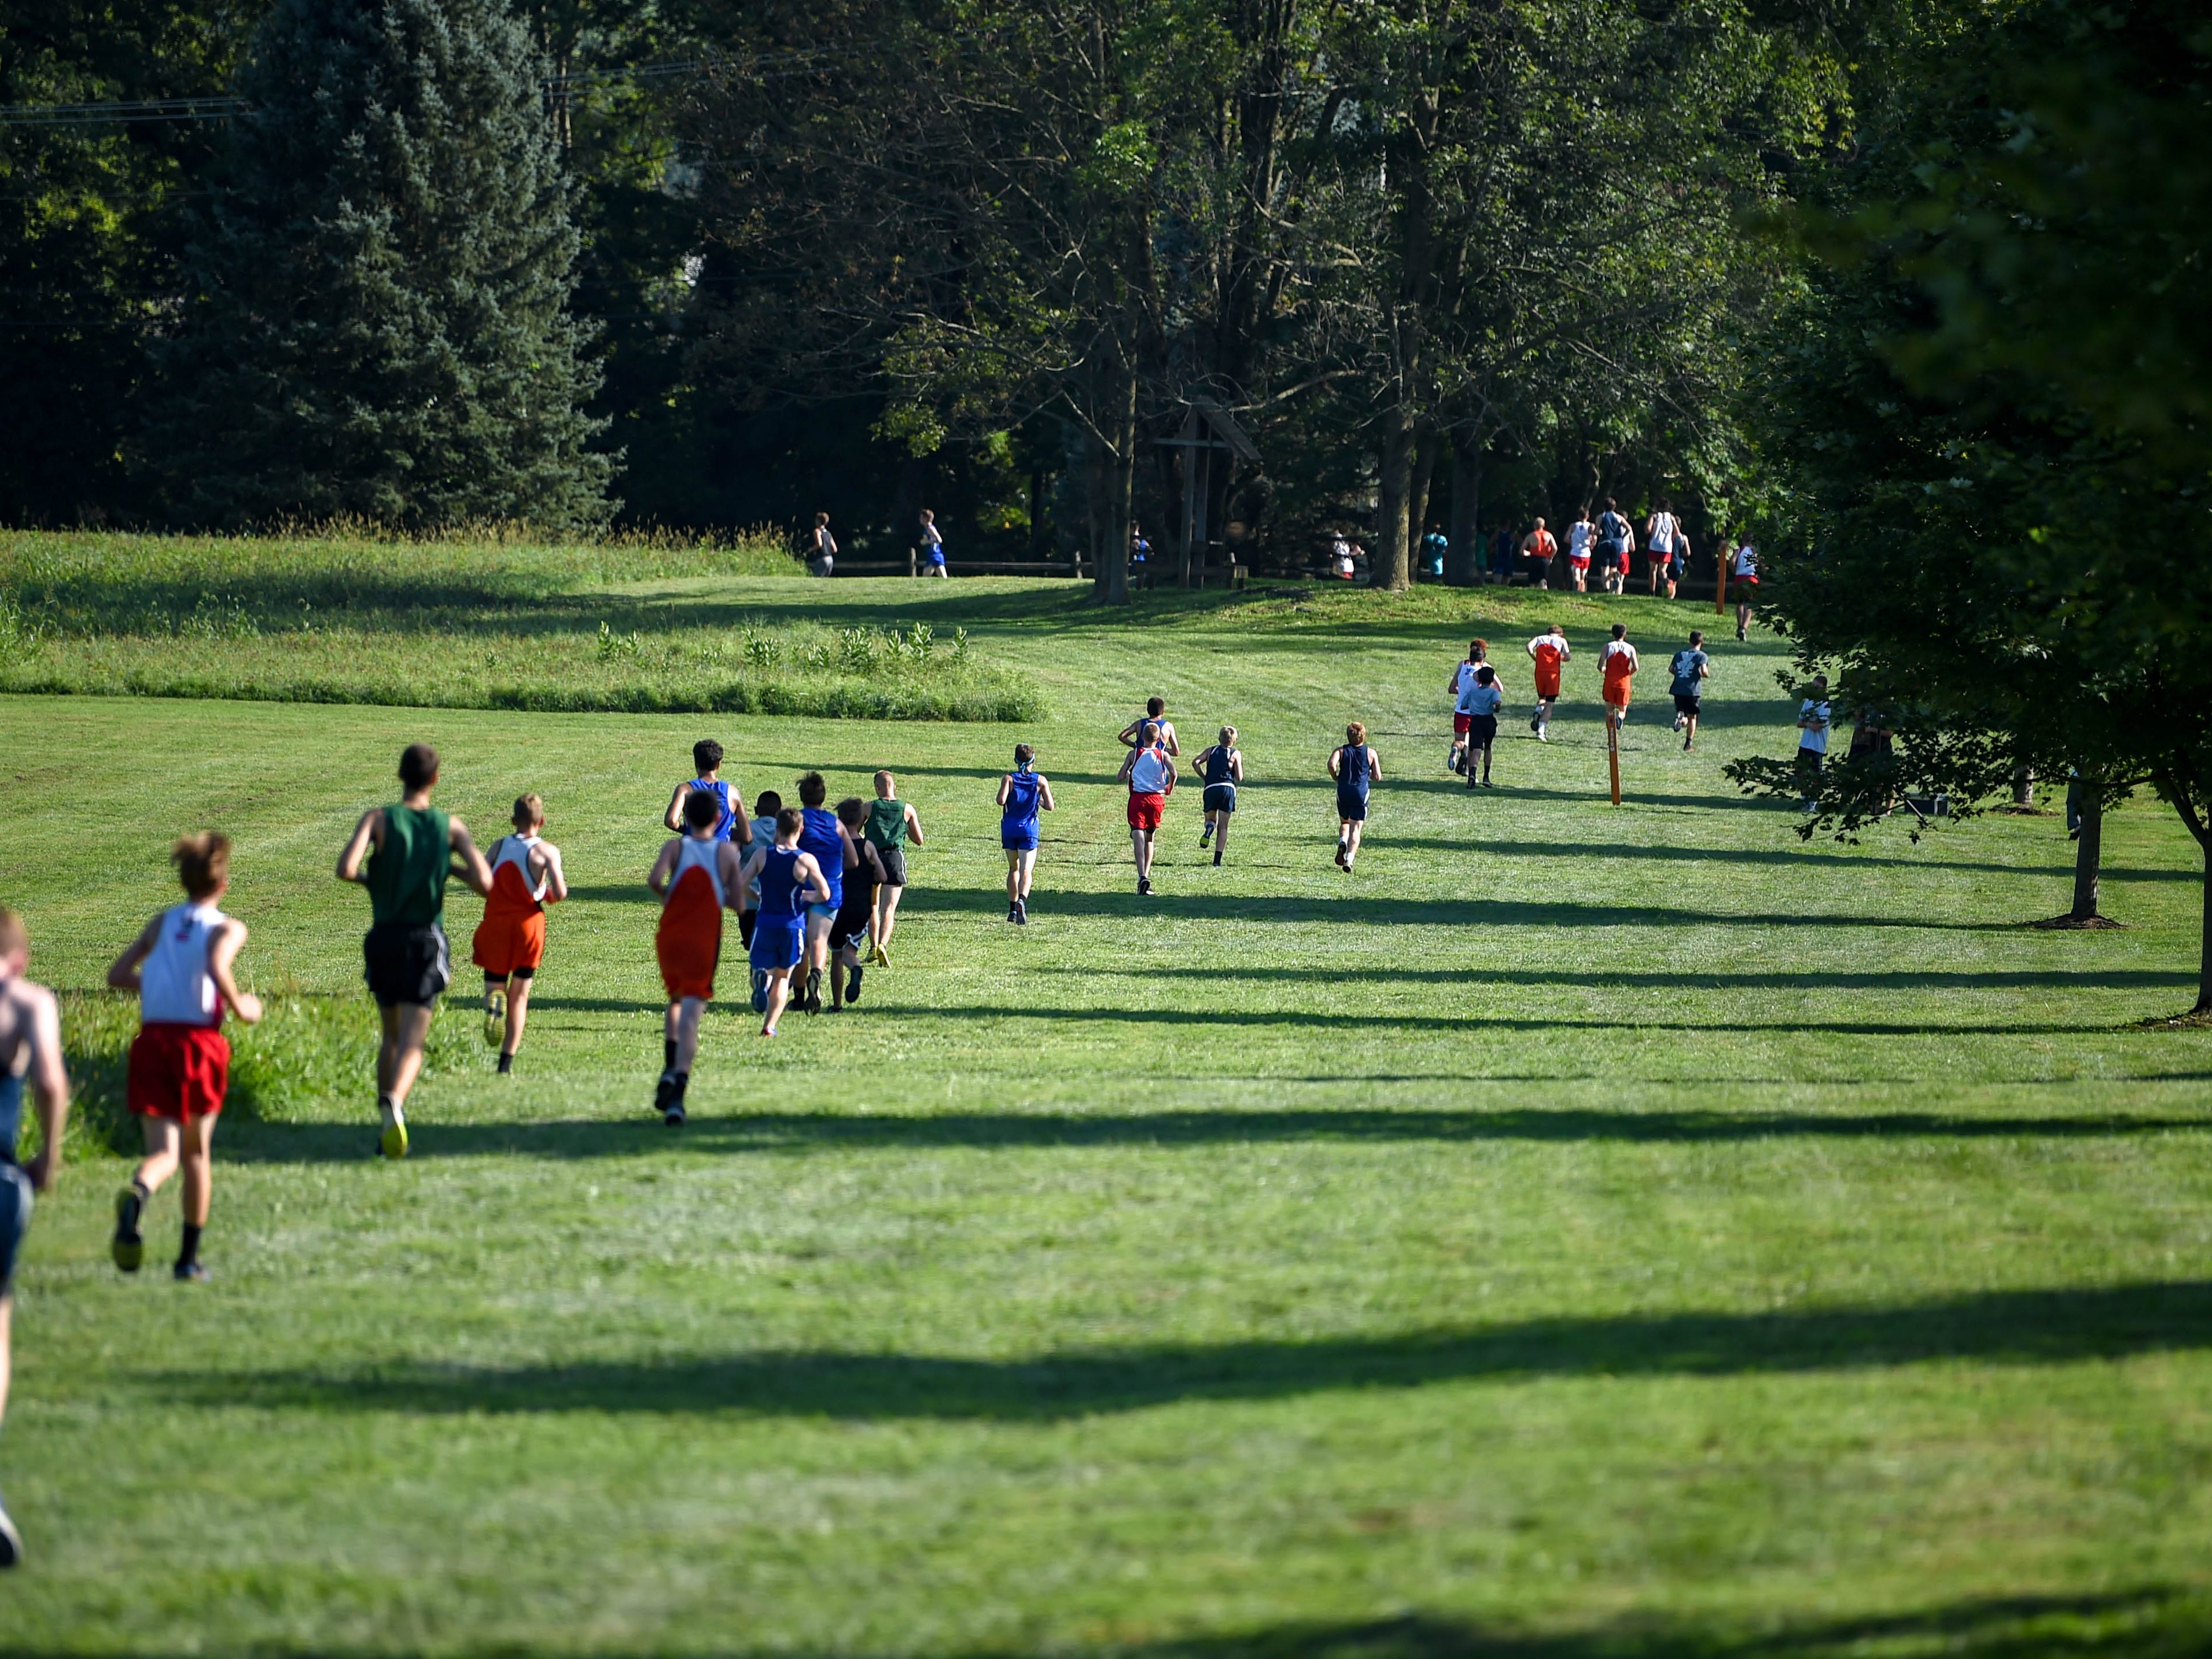 The boys catch their stride during the Cross Country scrimmage at John Rudy County Park on August 30, 2018.